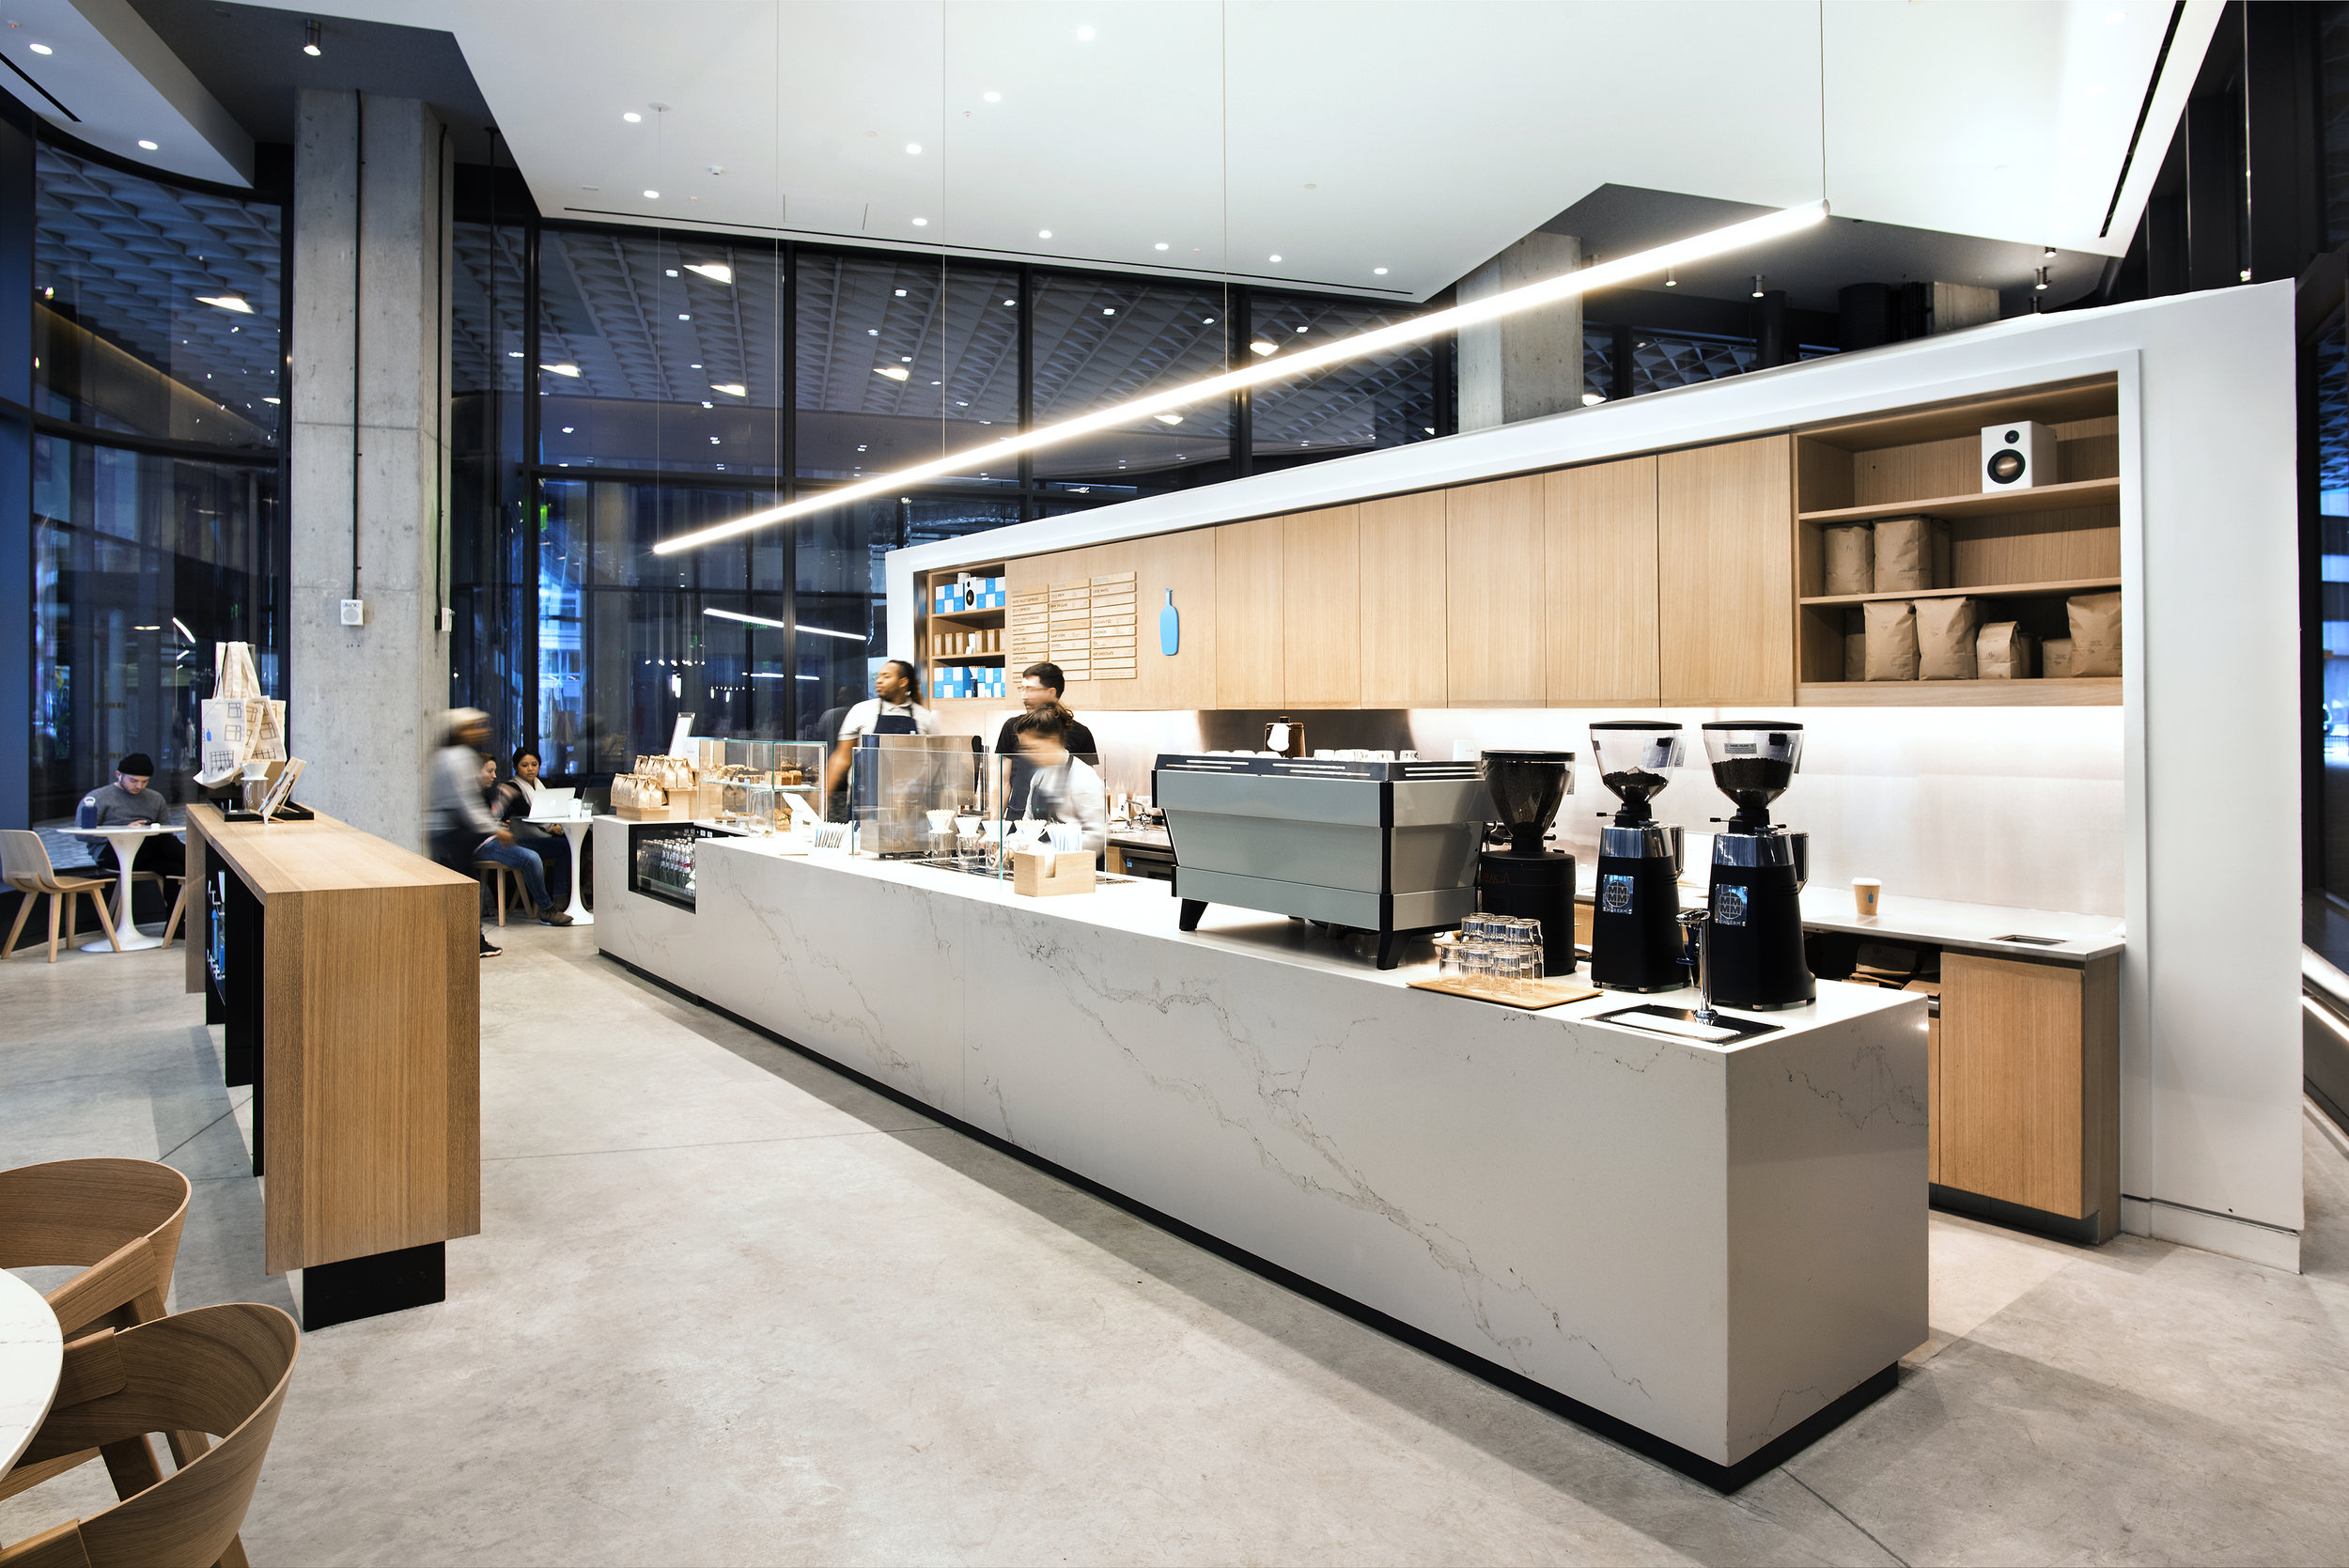 Blue Bottle Cafe Veneer Cabinets